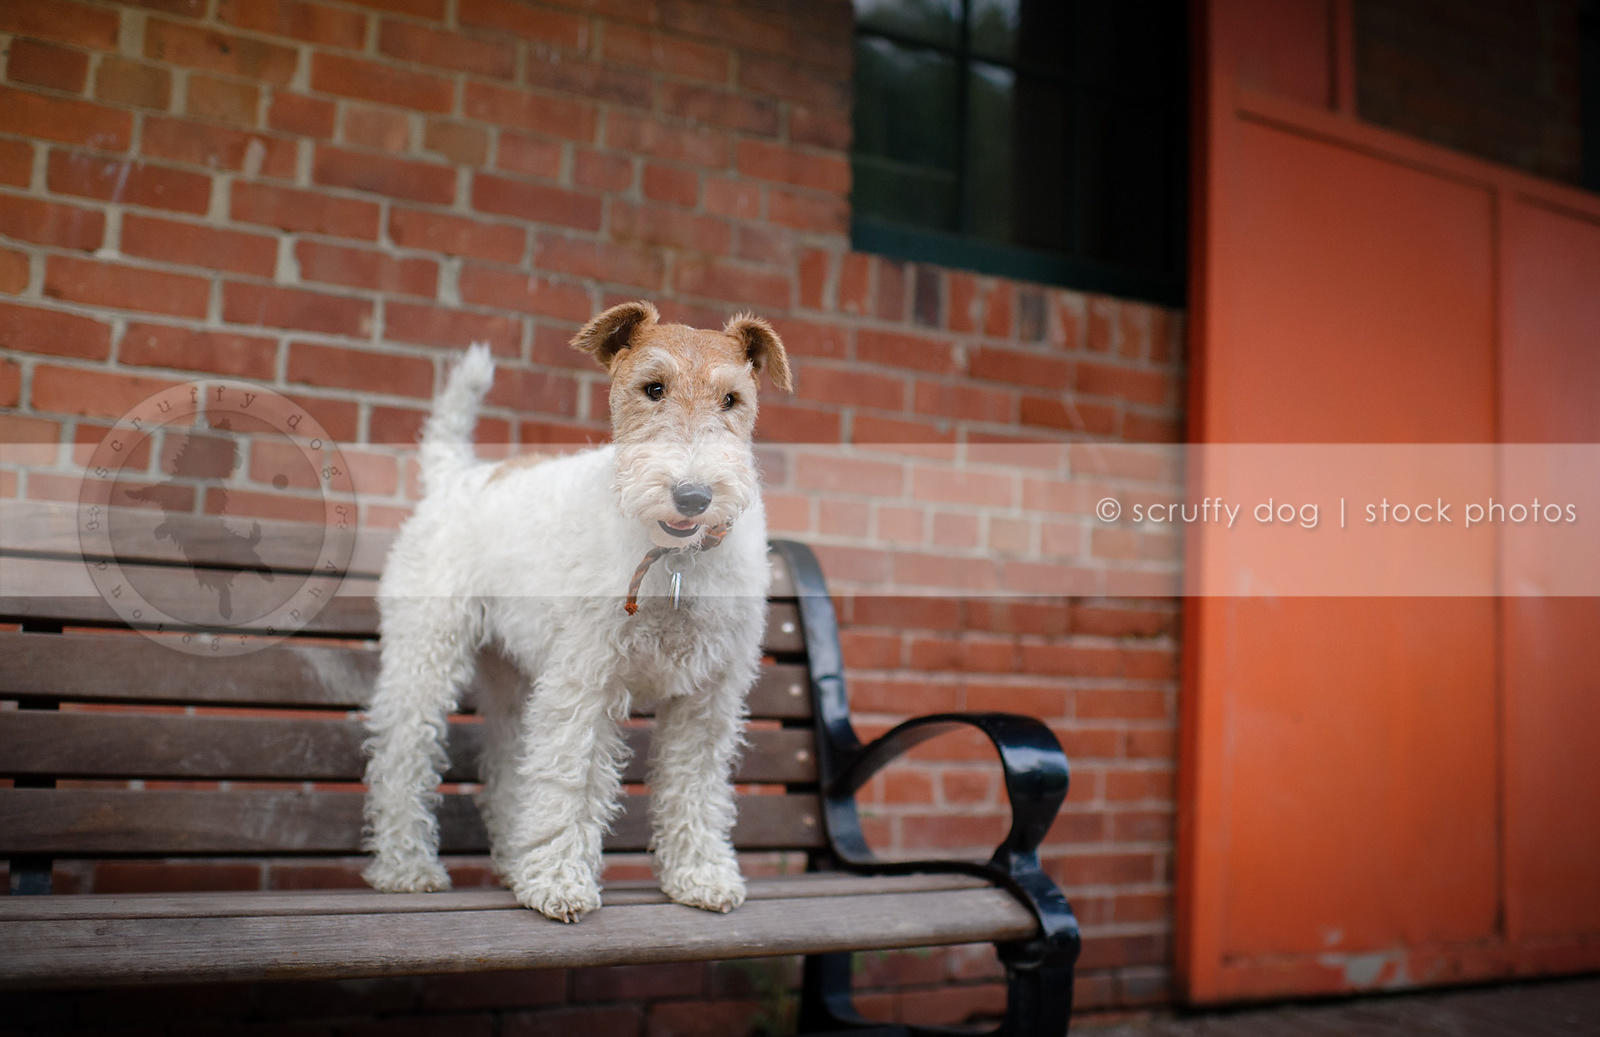 tan and white wirehaired terrier on park bench by brick wall